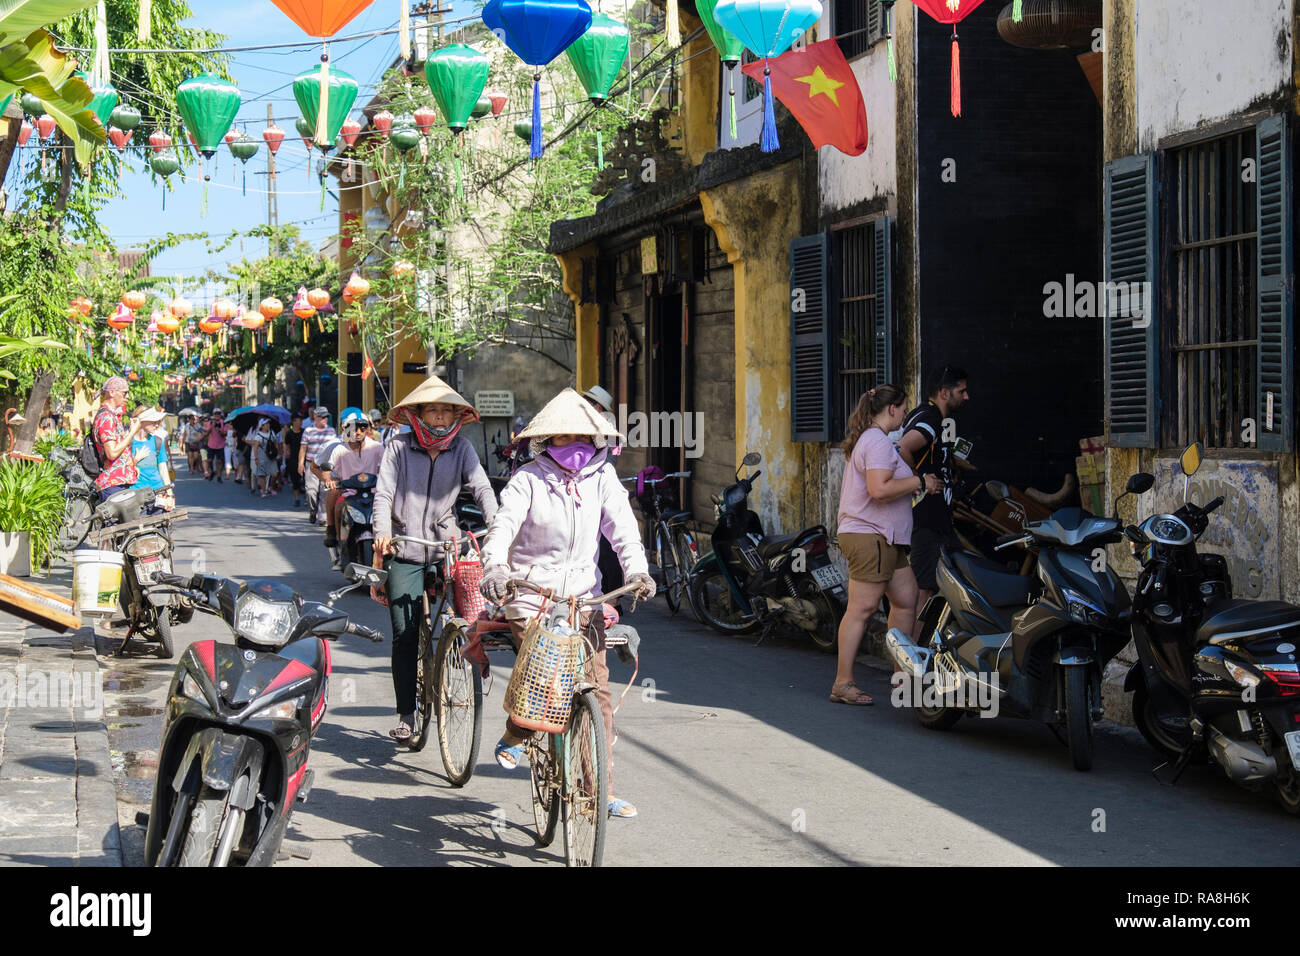 Typical street scene with local women riding bicycles in narrow street in old quarter of historic town. Hoi An, Quang Nam Province, Vietnam, Asia - Stock Image